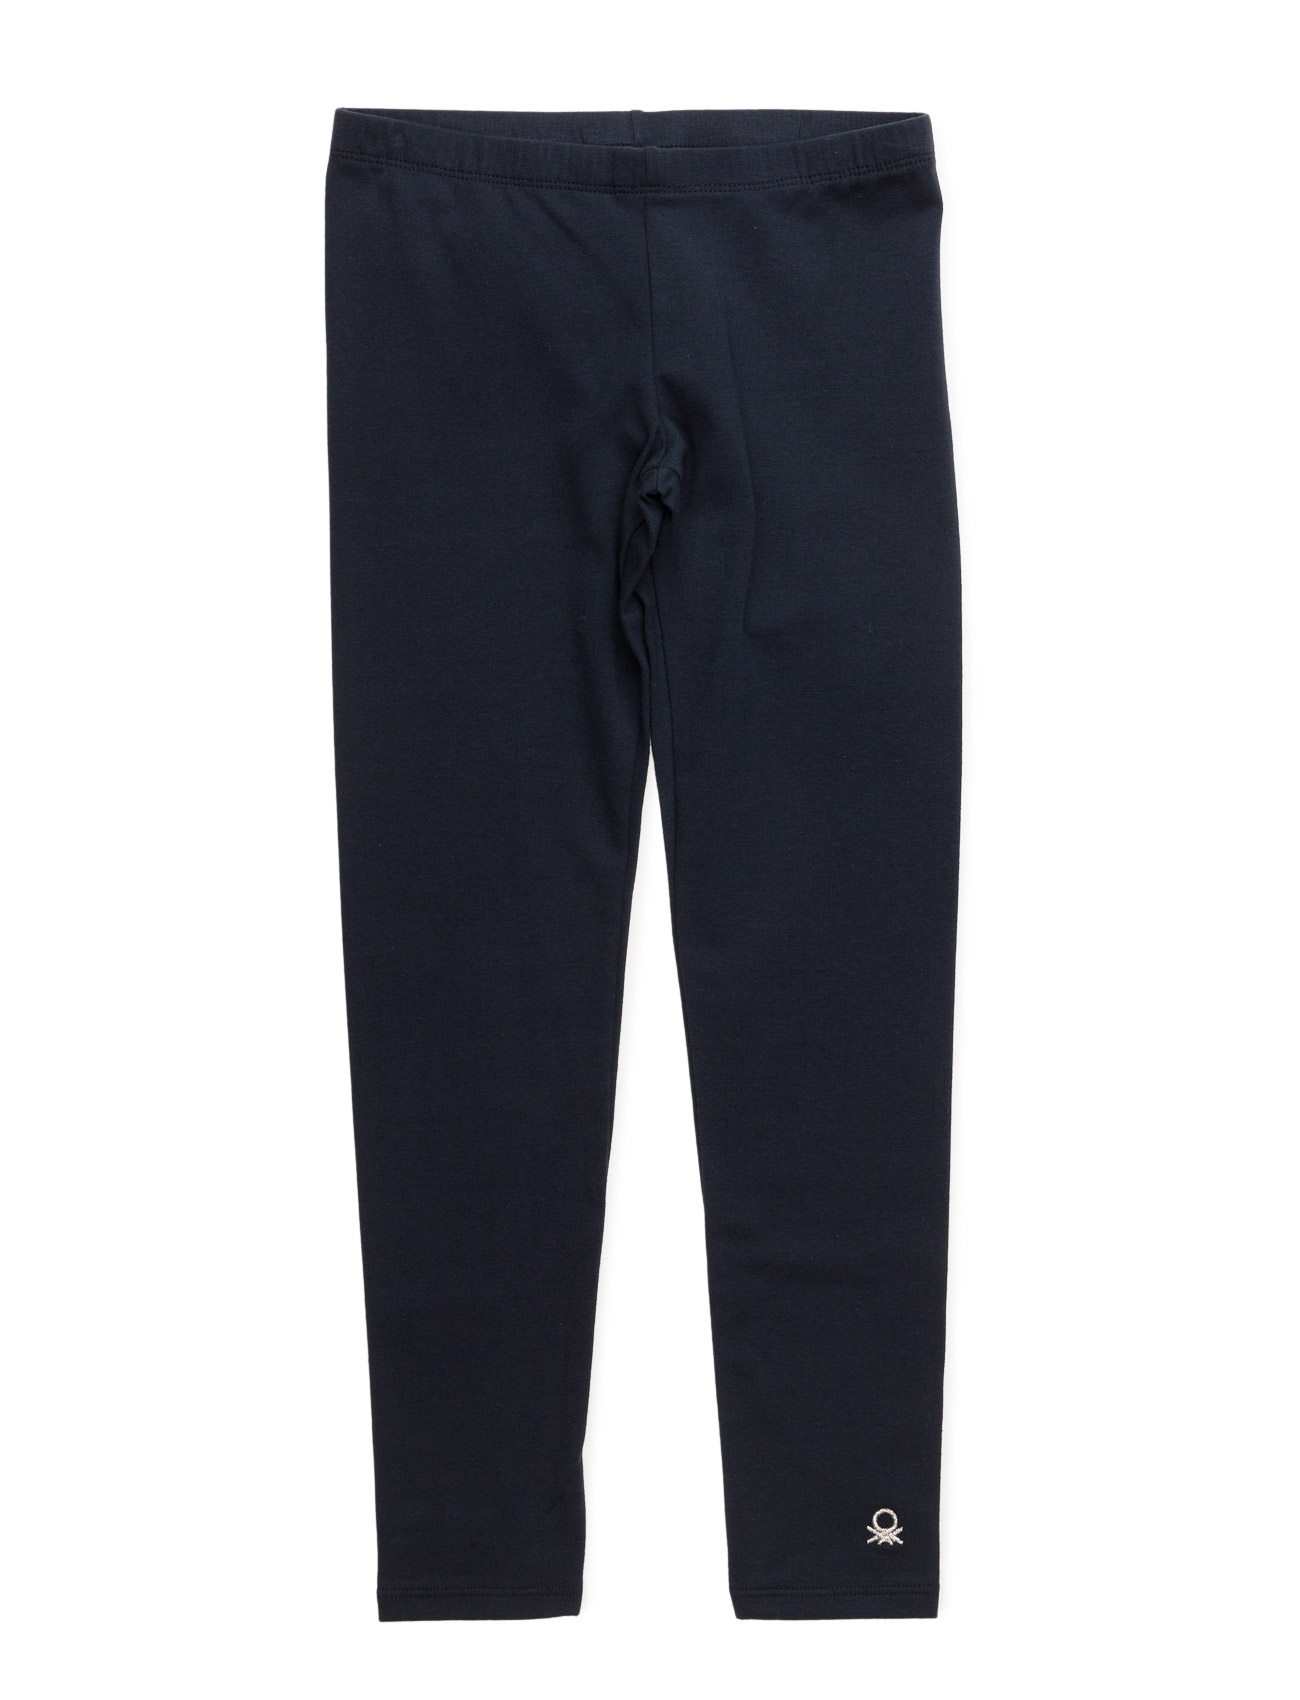 Trousers (2382507201)